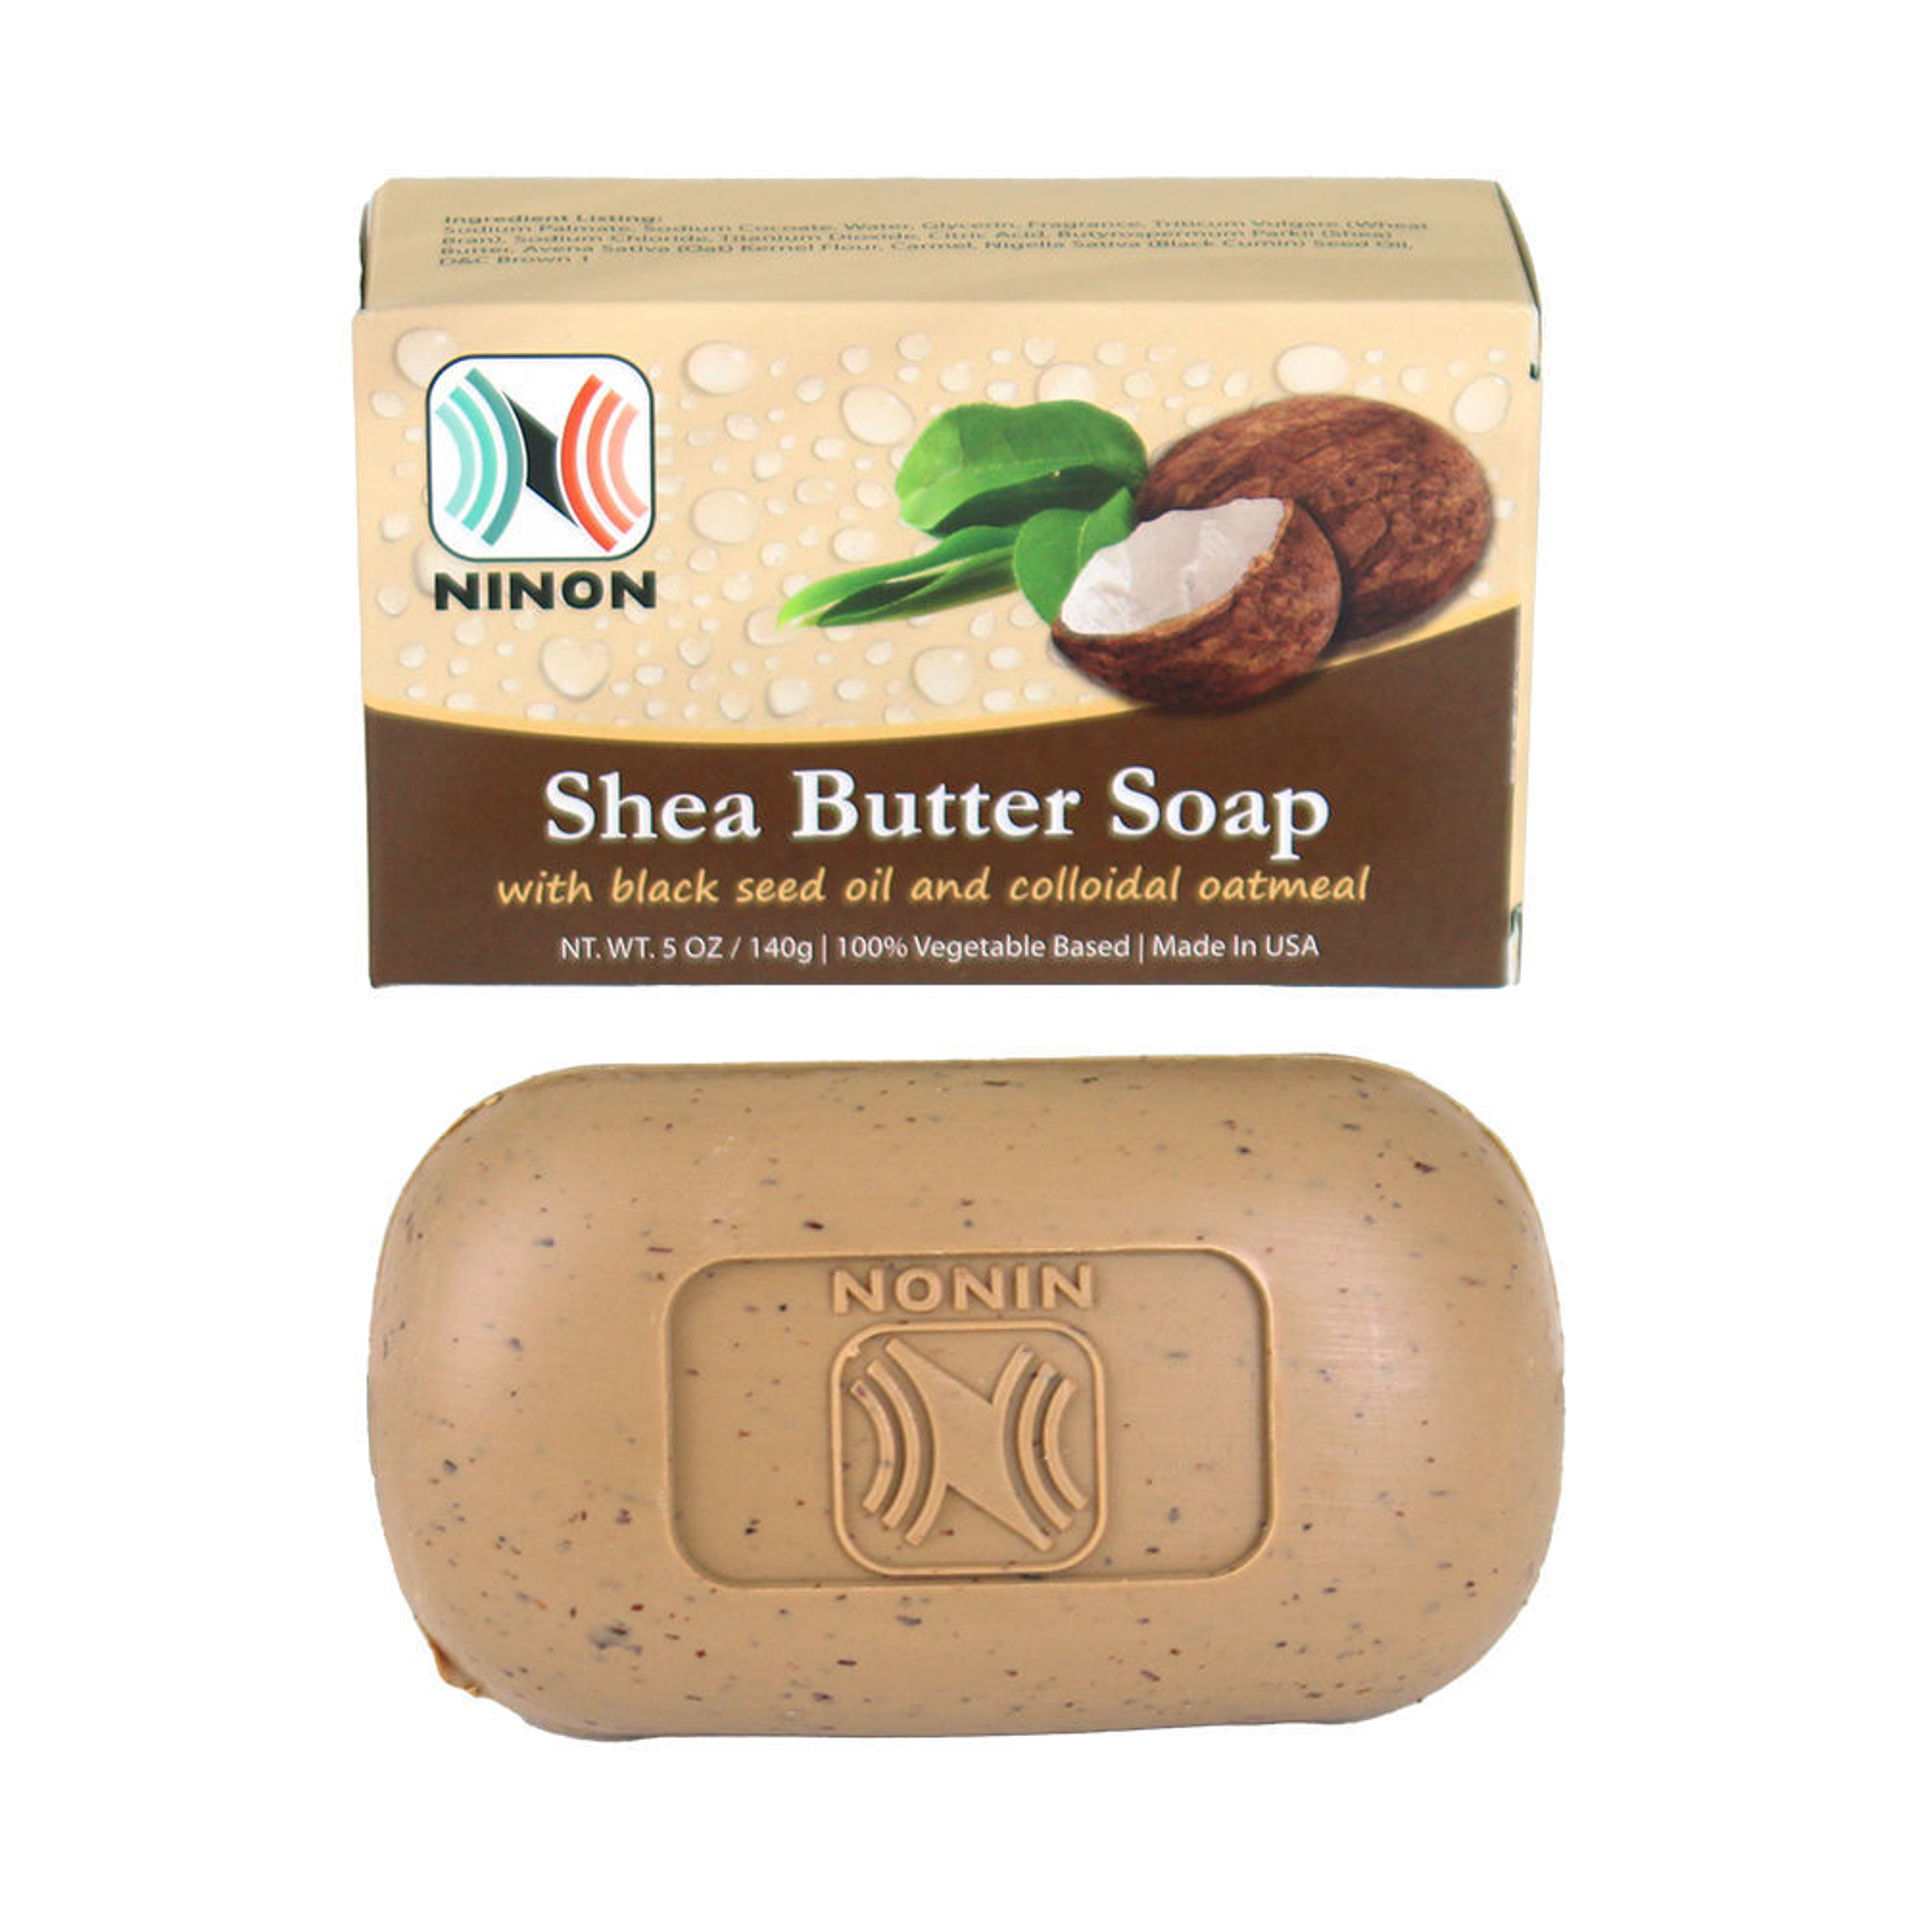 Picture of Shea Butter Soap - 5 oz.